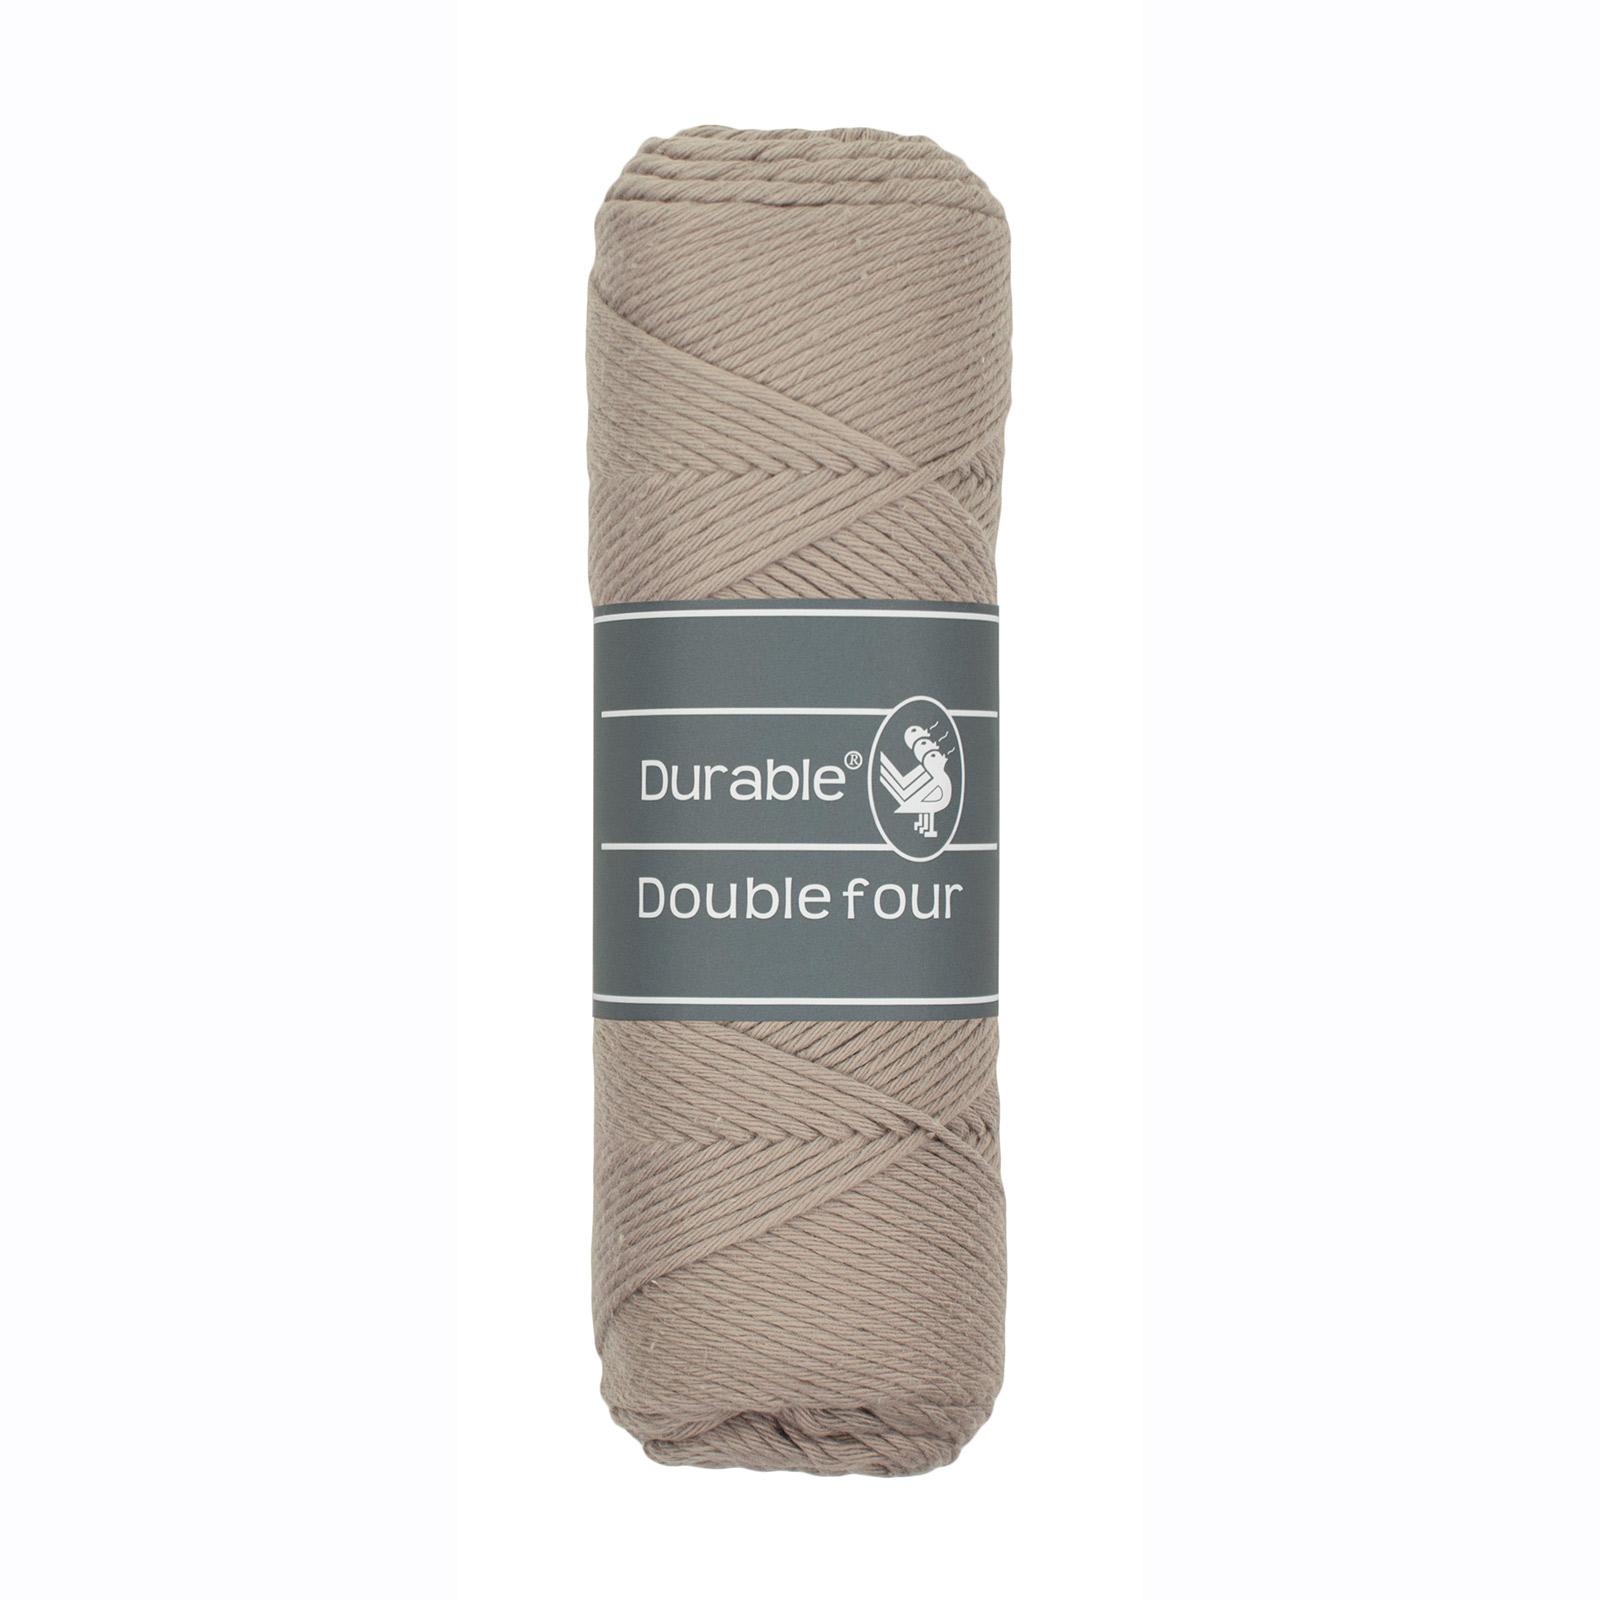 Durable Double Four – 340 Taupe